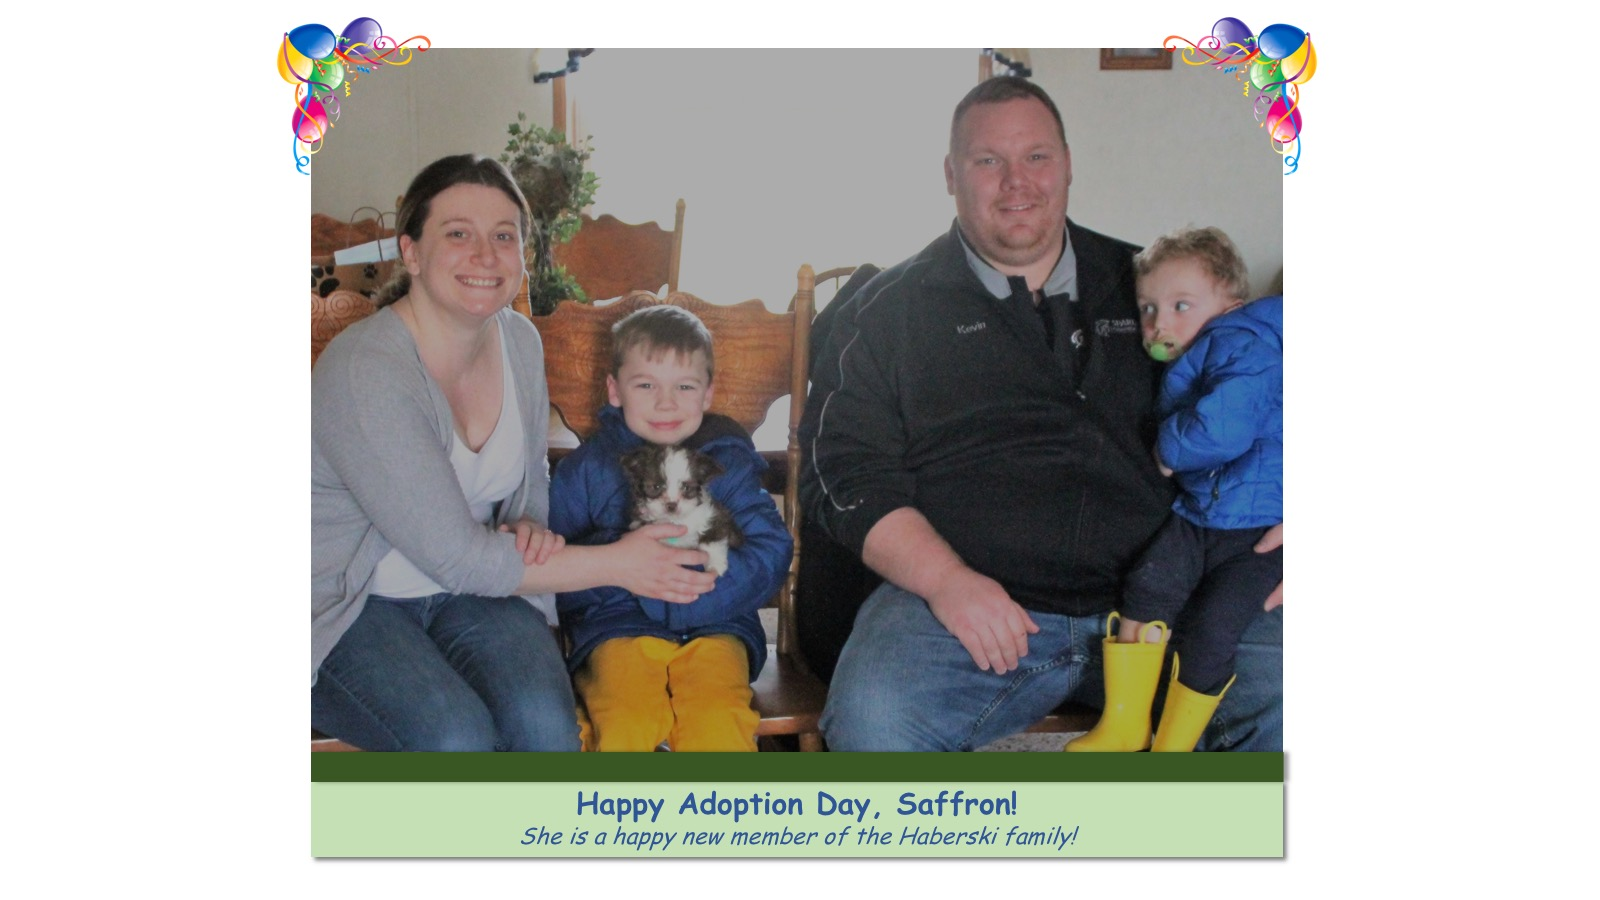 Saffron_Adoption_Photo_2018.jpg